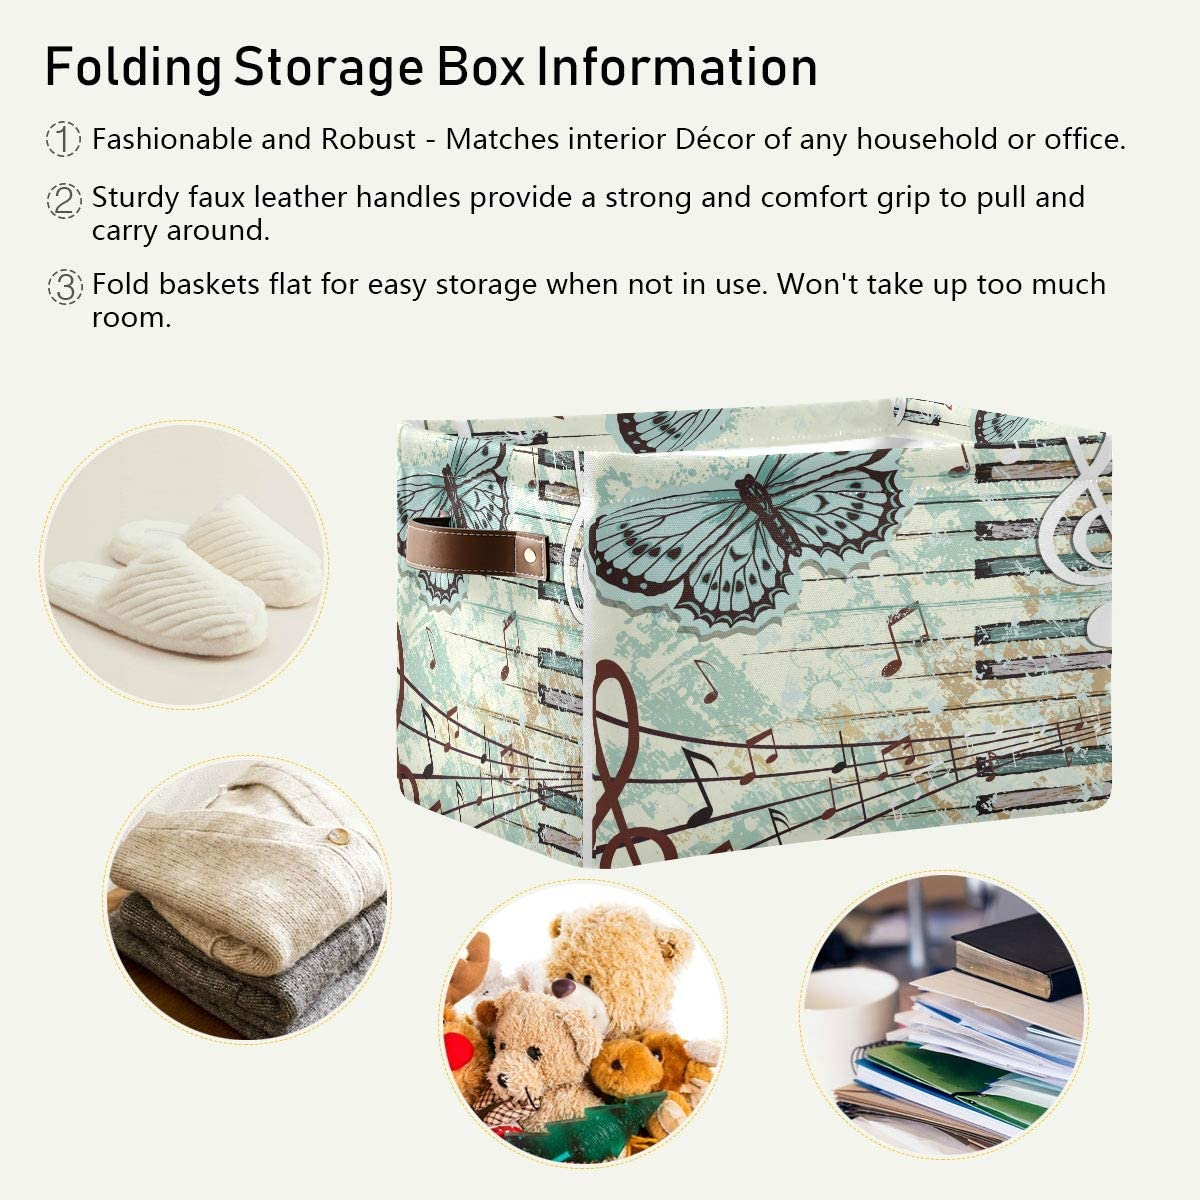 HMZXZ Rxyy Music Note Piano Key Butterfly Canvas Fabric Storage Basket Collapsible Toys Storage Bin with PU Leather Handles Basket Box Organizer for Wardrobe Closet Shelves Organiser